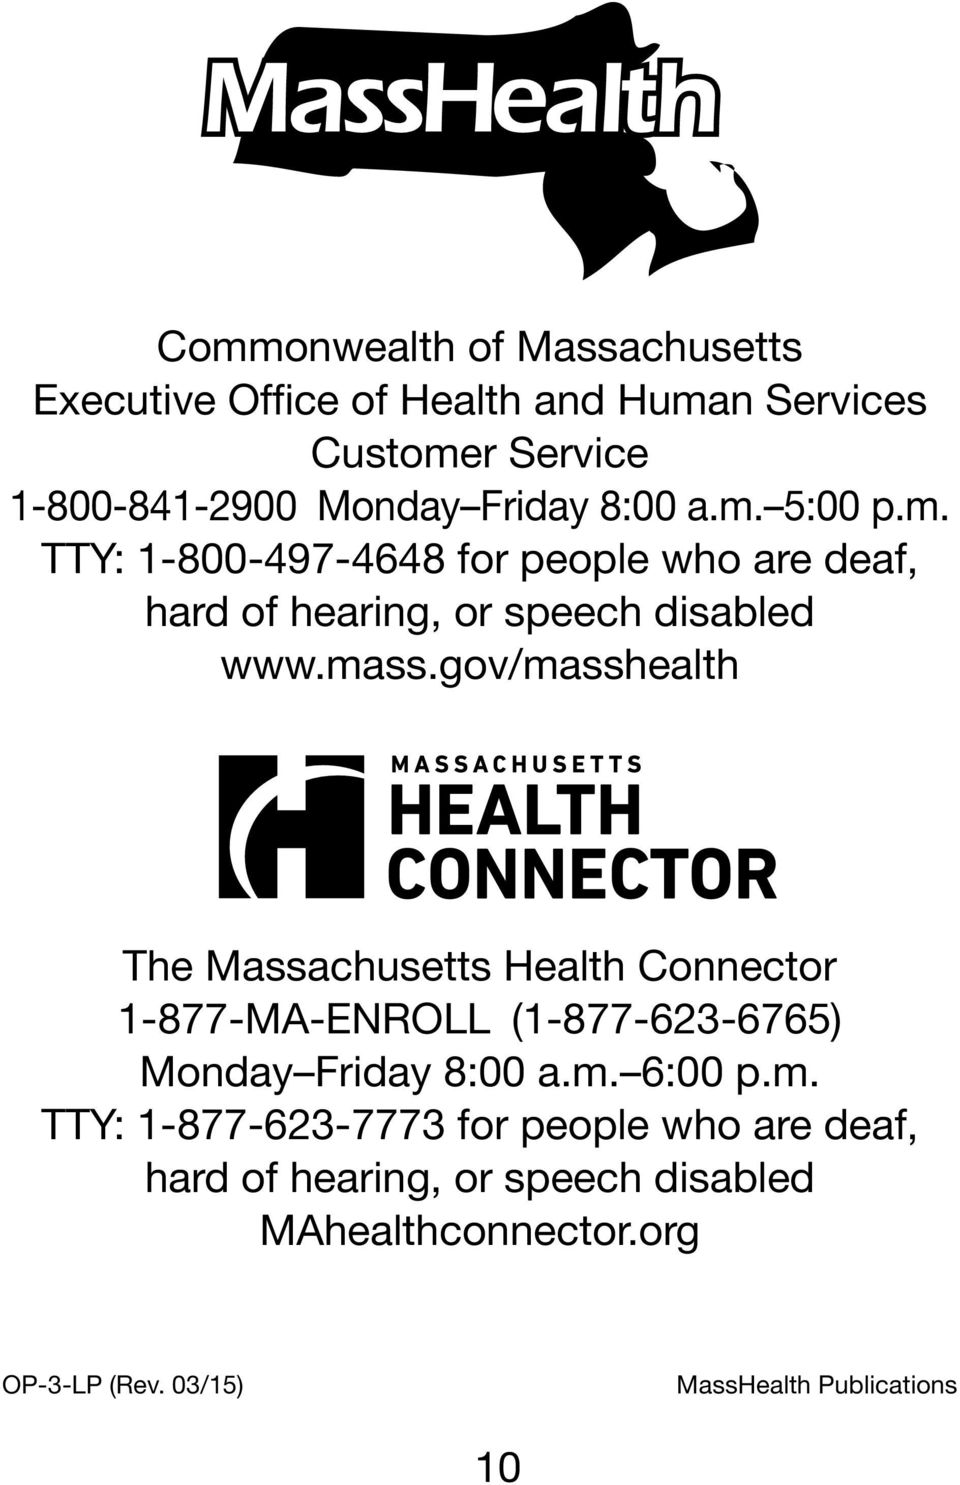 gov/masshealth The Massachusetts Health Connector 1-877-MA-ENROLL (1-877-623-6765) Monday Friday 8:00 a.m. 6:00 p.m. TTY: 1-877-623-7773 for people who are deaf, hard of hearing, or speech disabled MAhealthconnector.